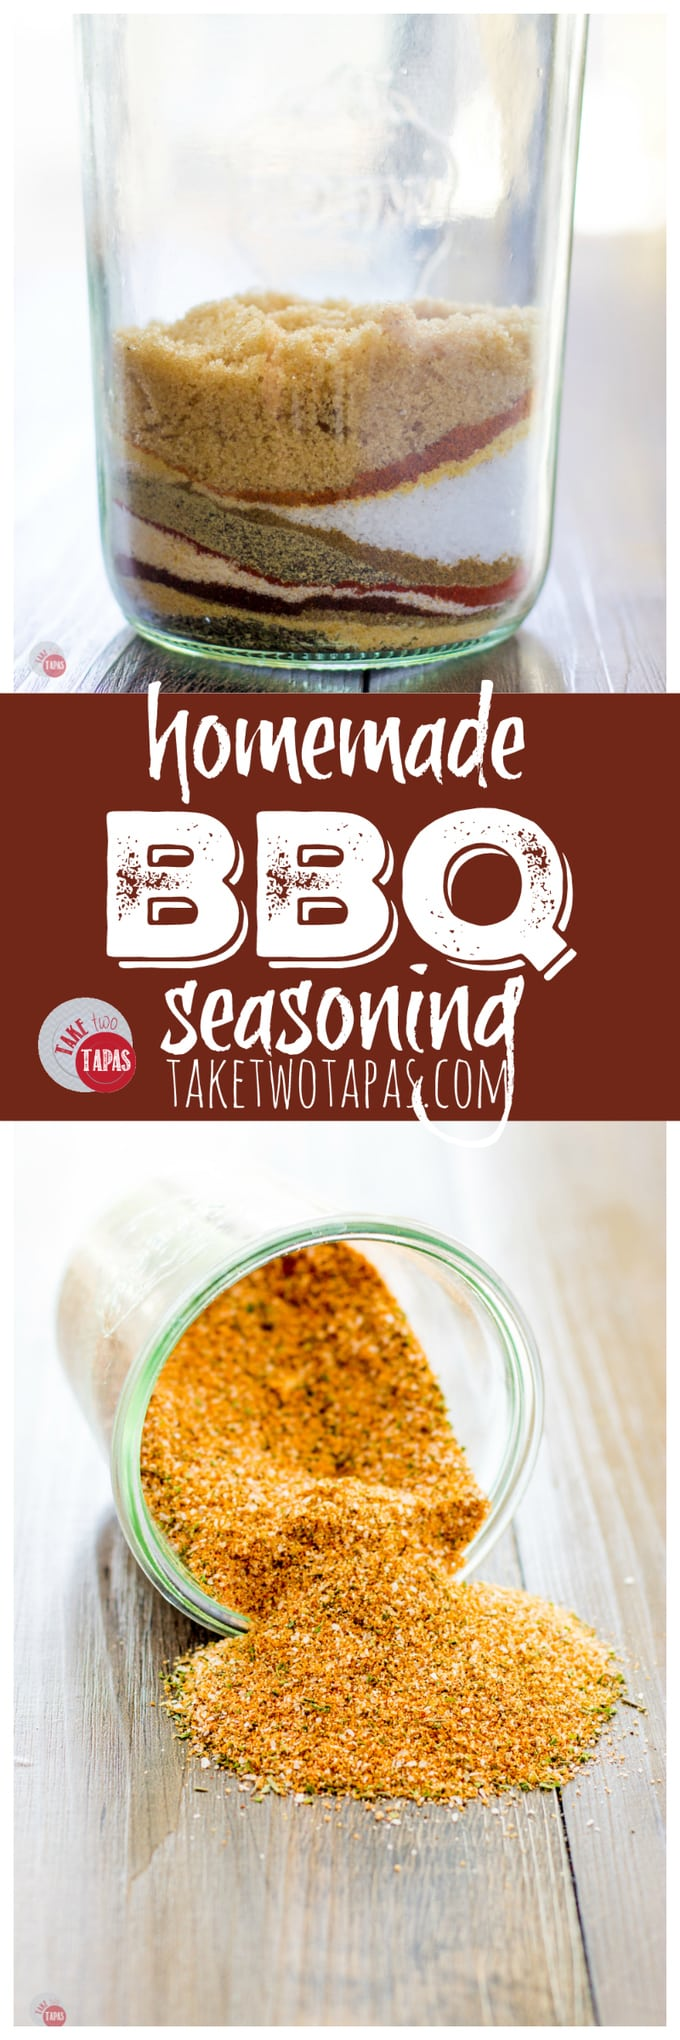 Homemade Rub BBQ Seasoning Mix | Take Two Tapas